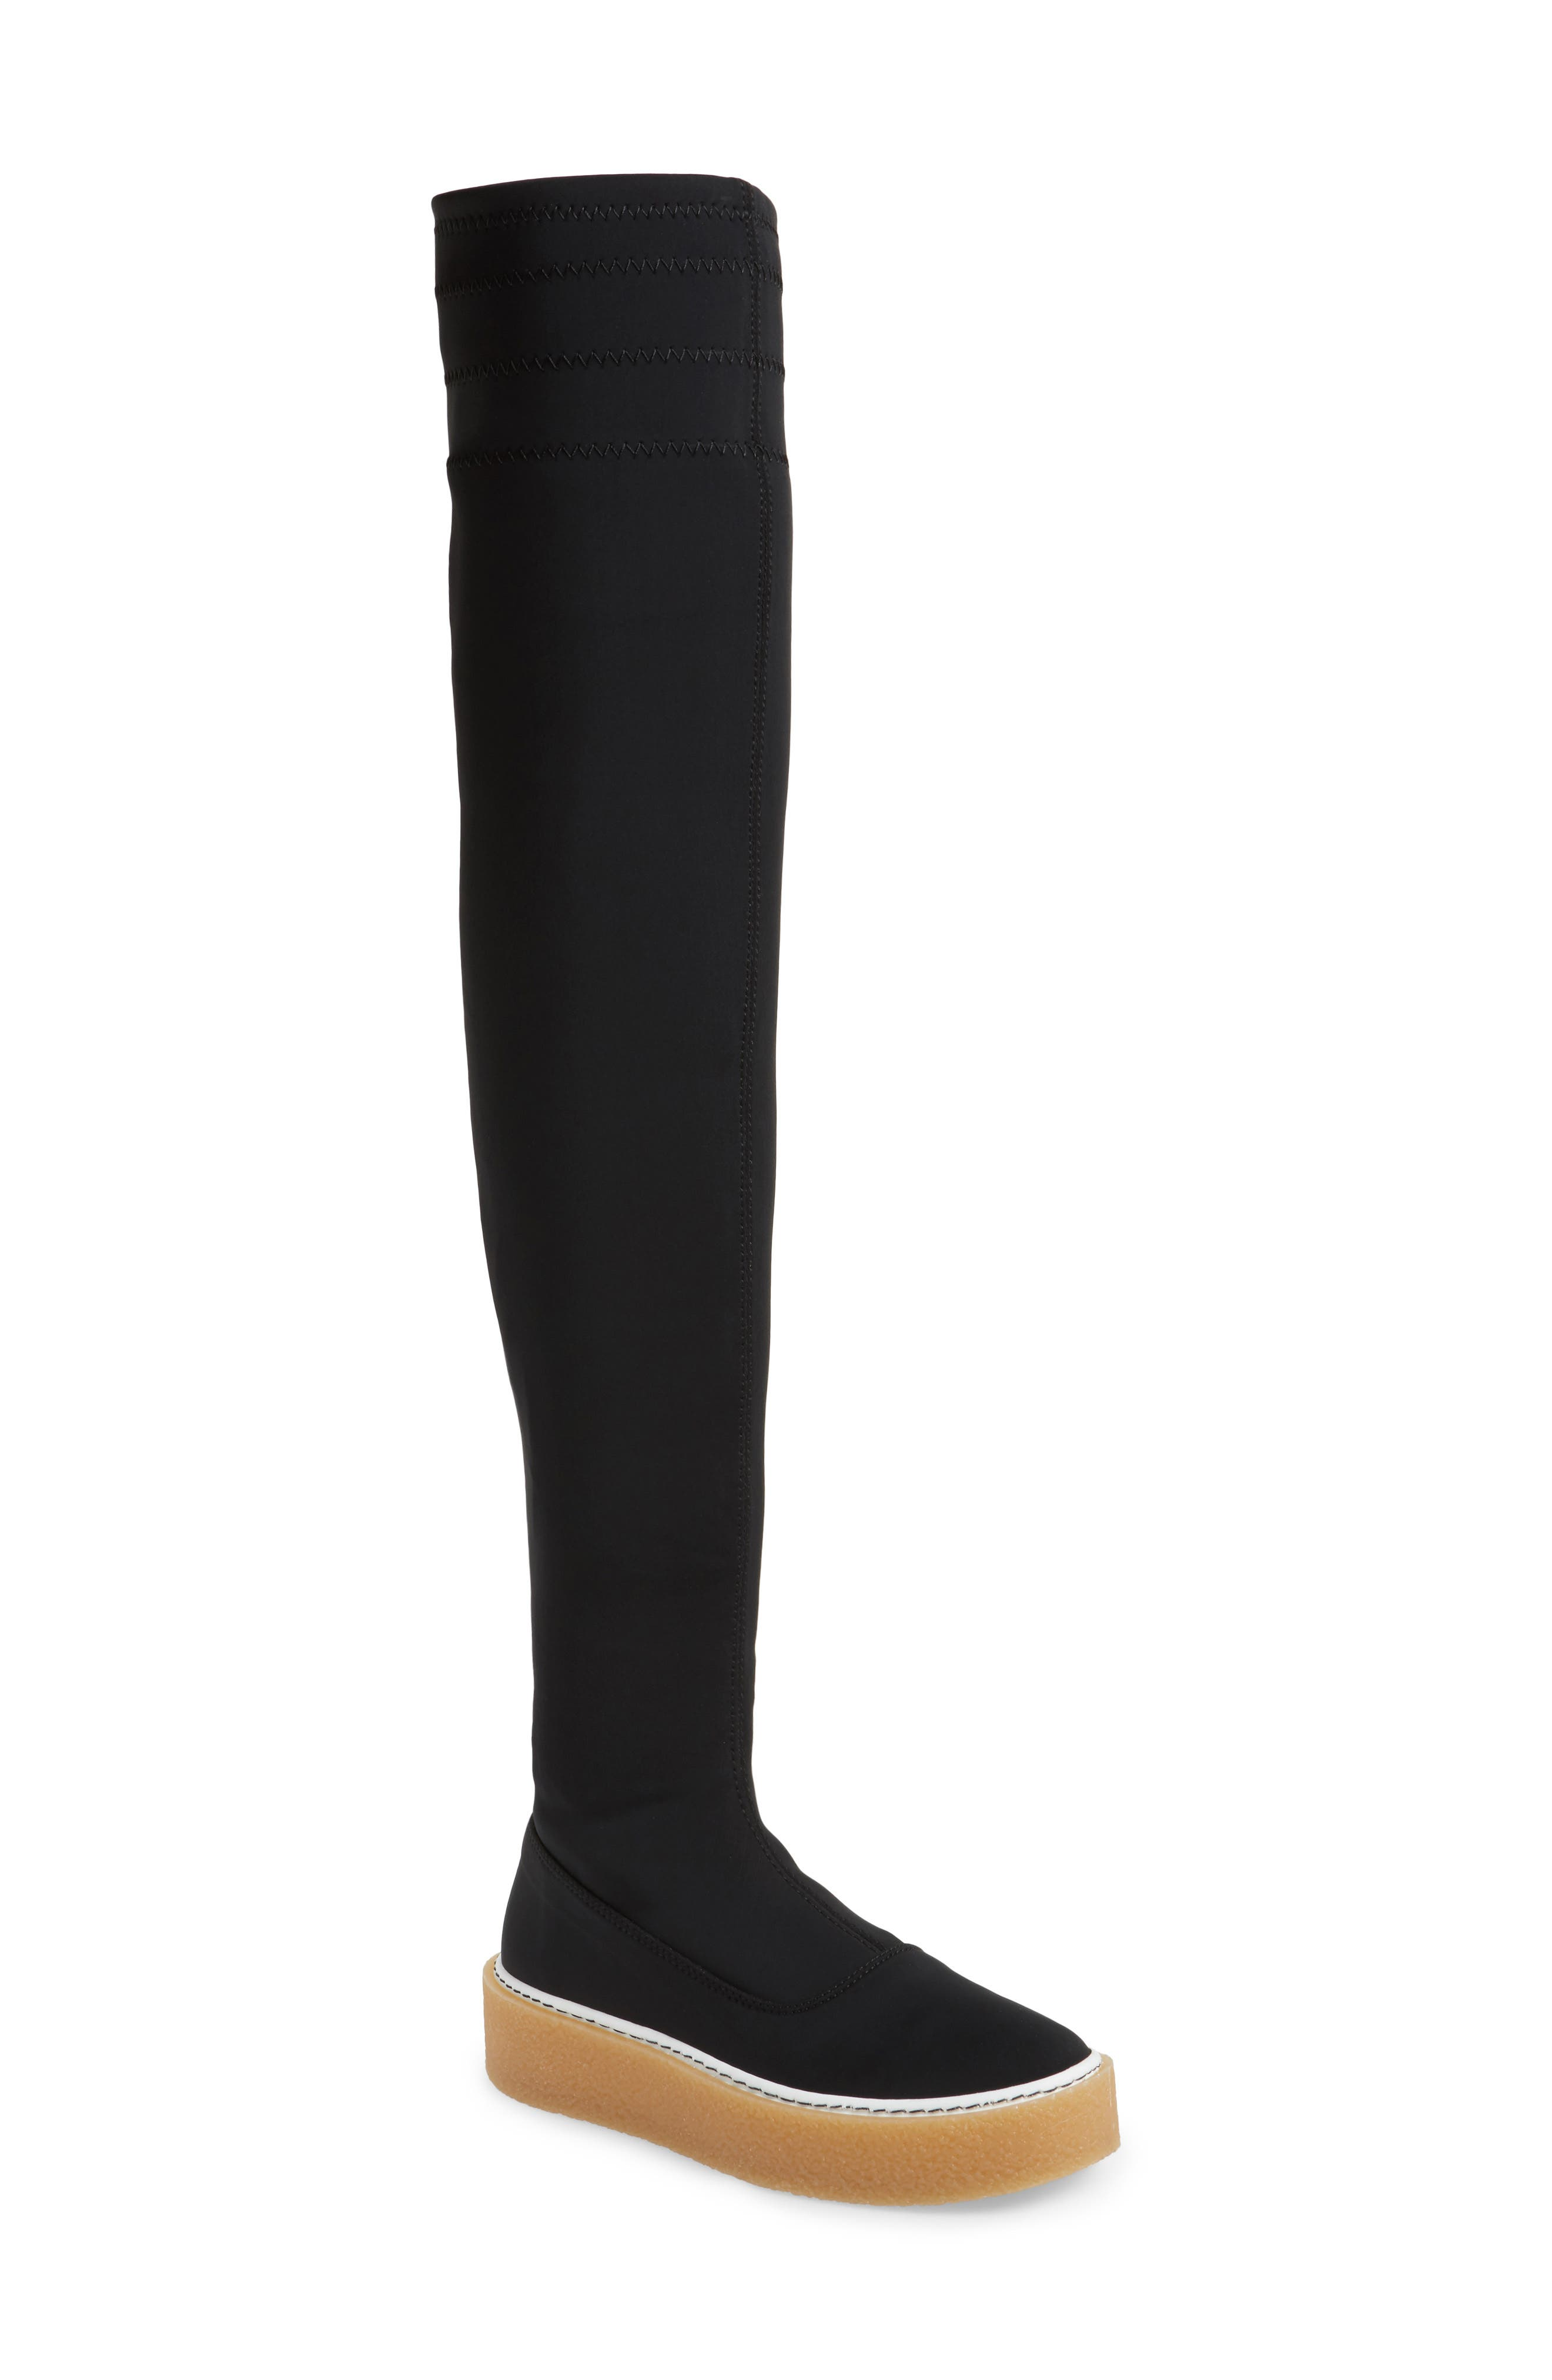 Outer Limits Thigh High Boot,                             Main thumbnail 1, color,                             001